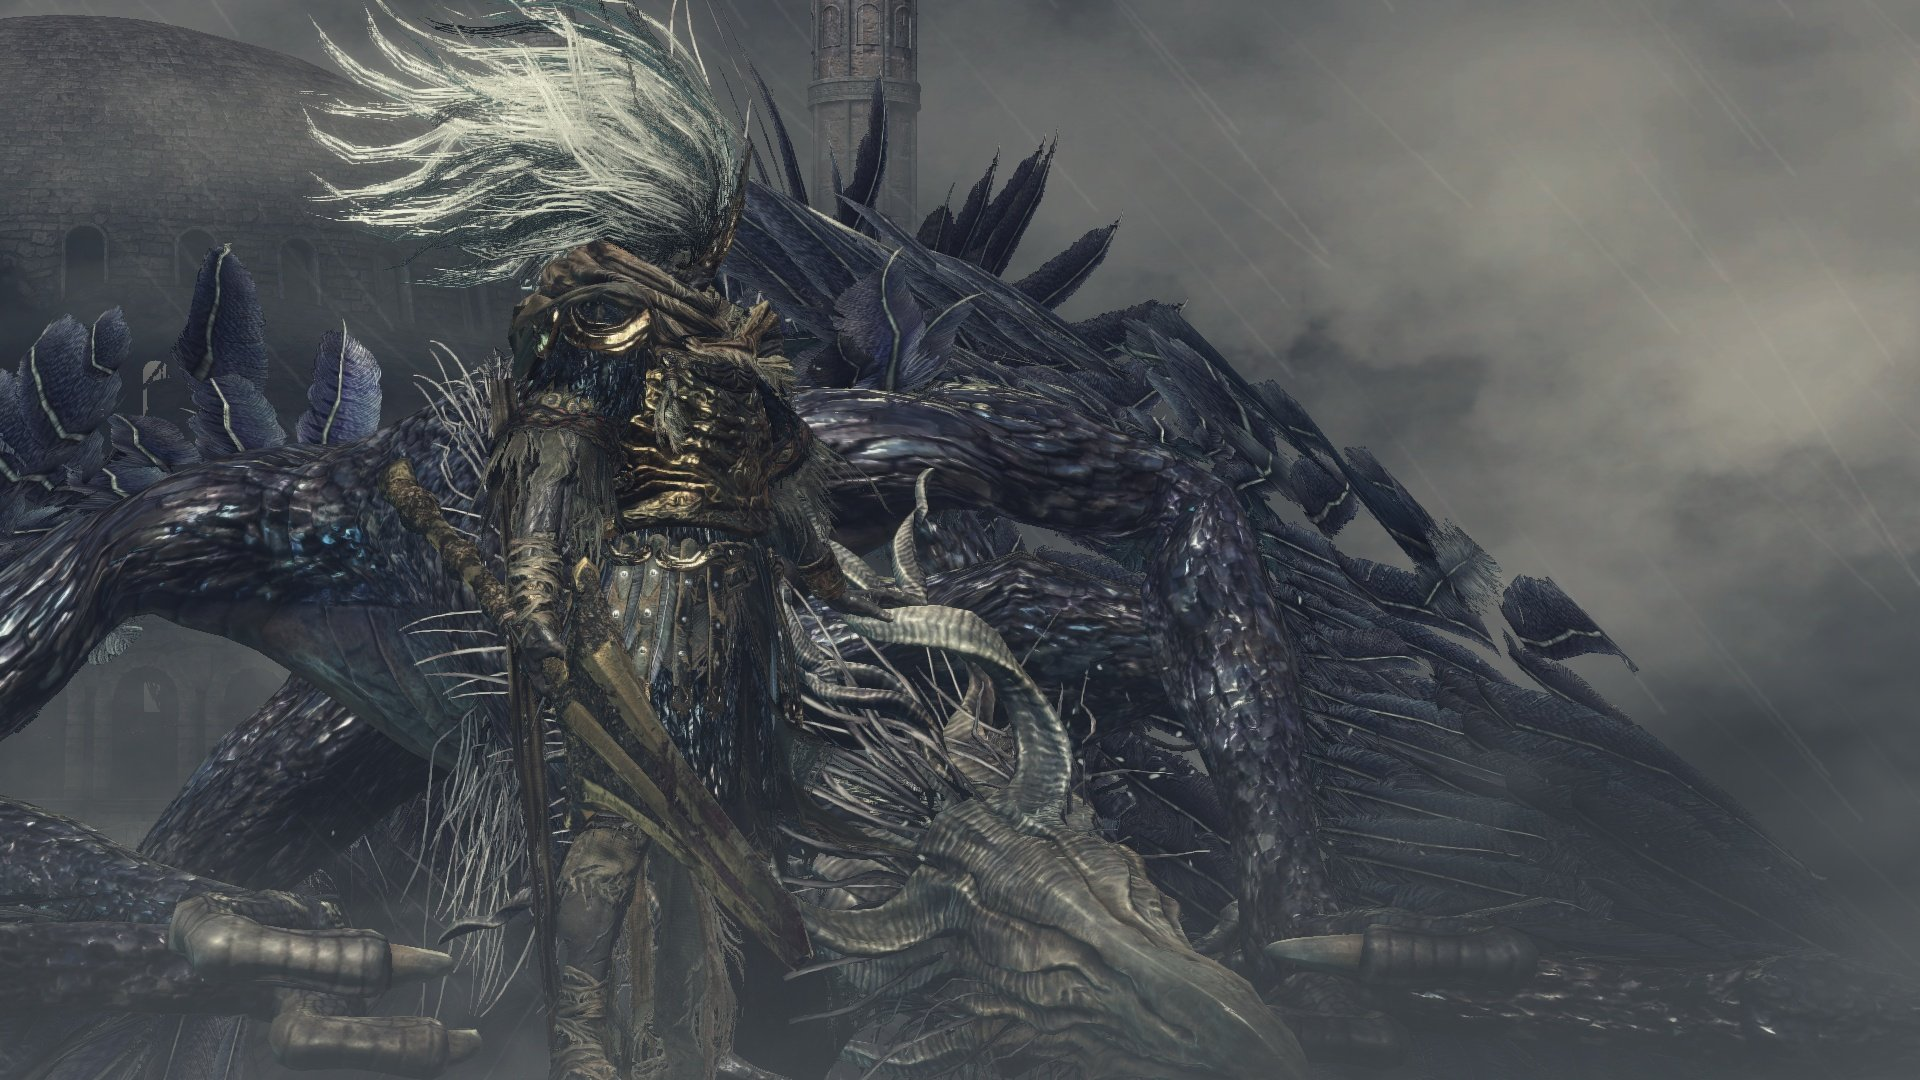 King of the Storm and Nameless King